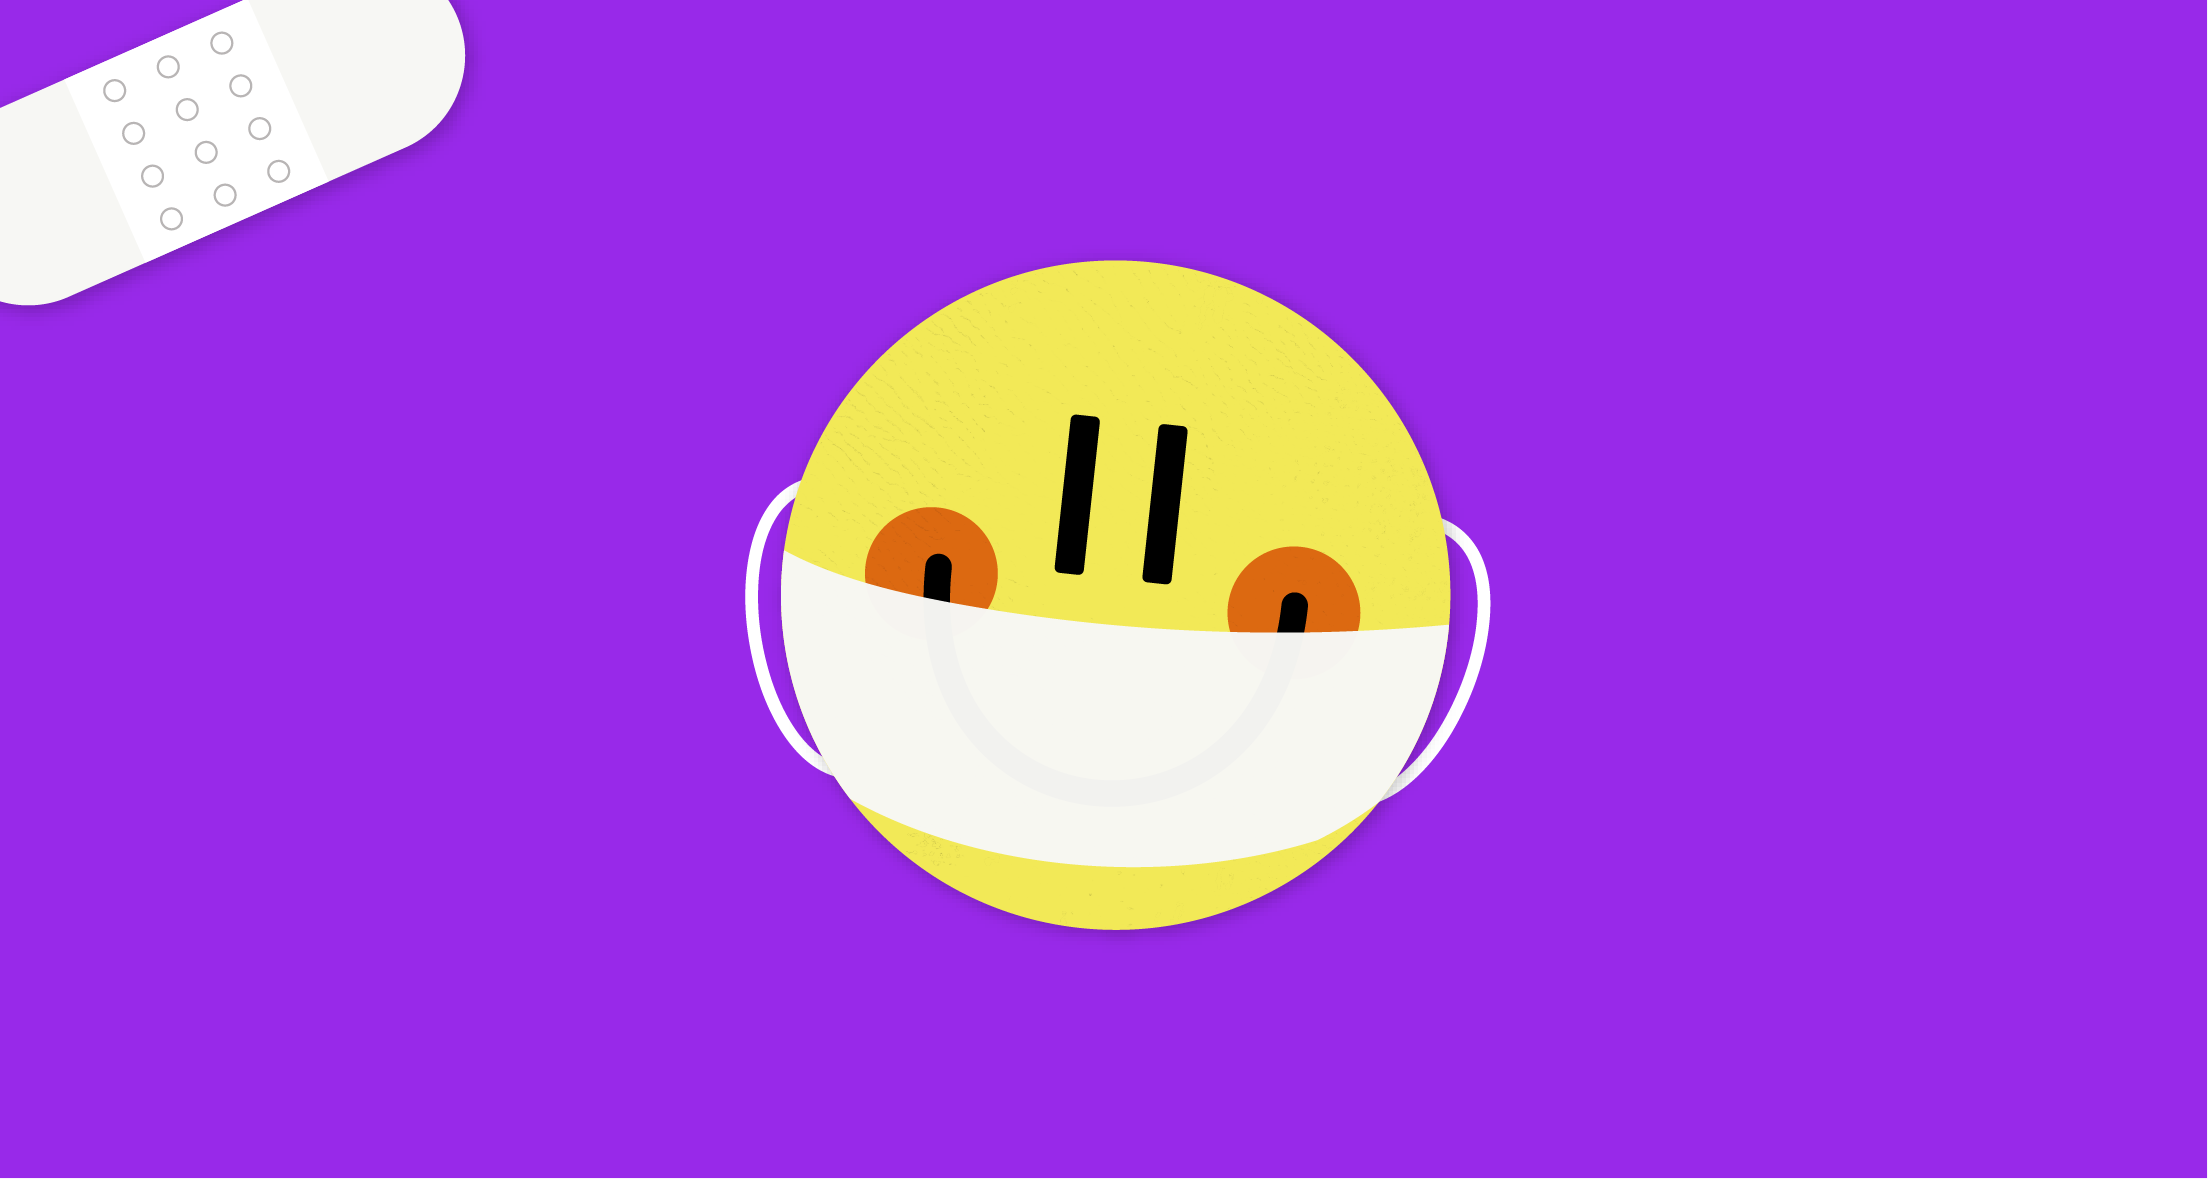 A violet graphic with a bandaid sticker and a yellow smiley face wearing a mask